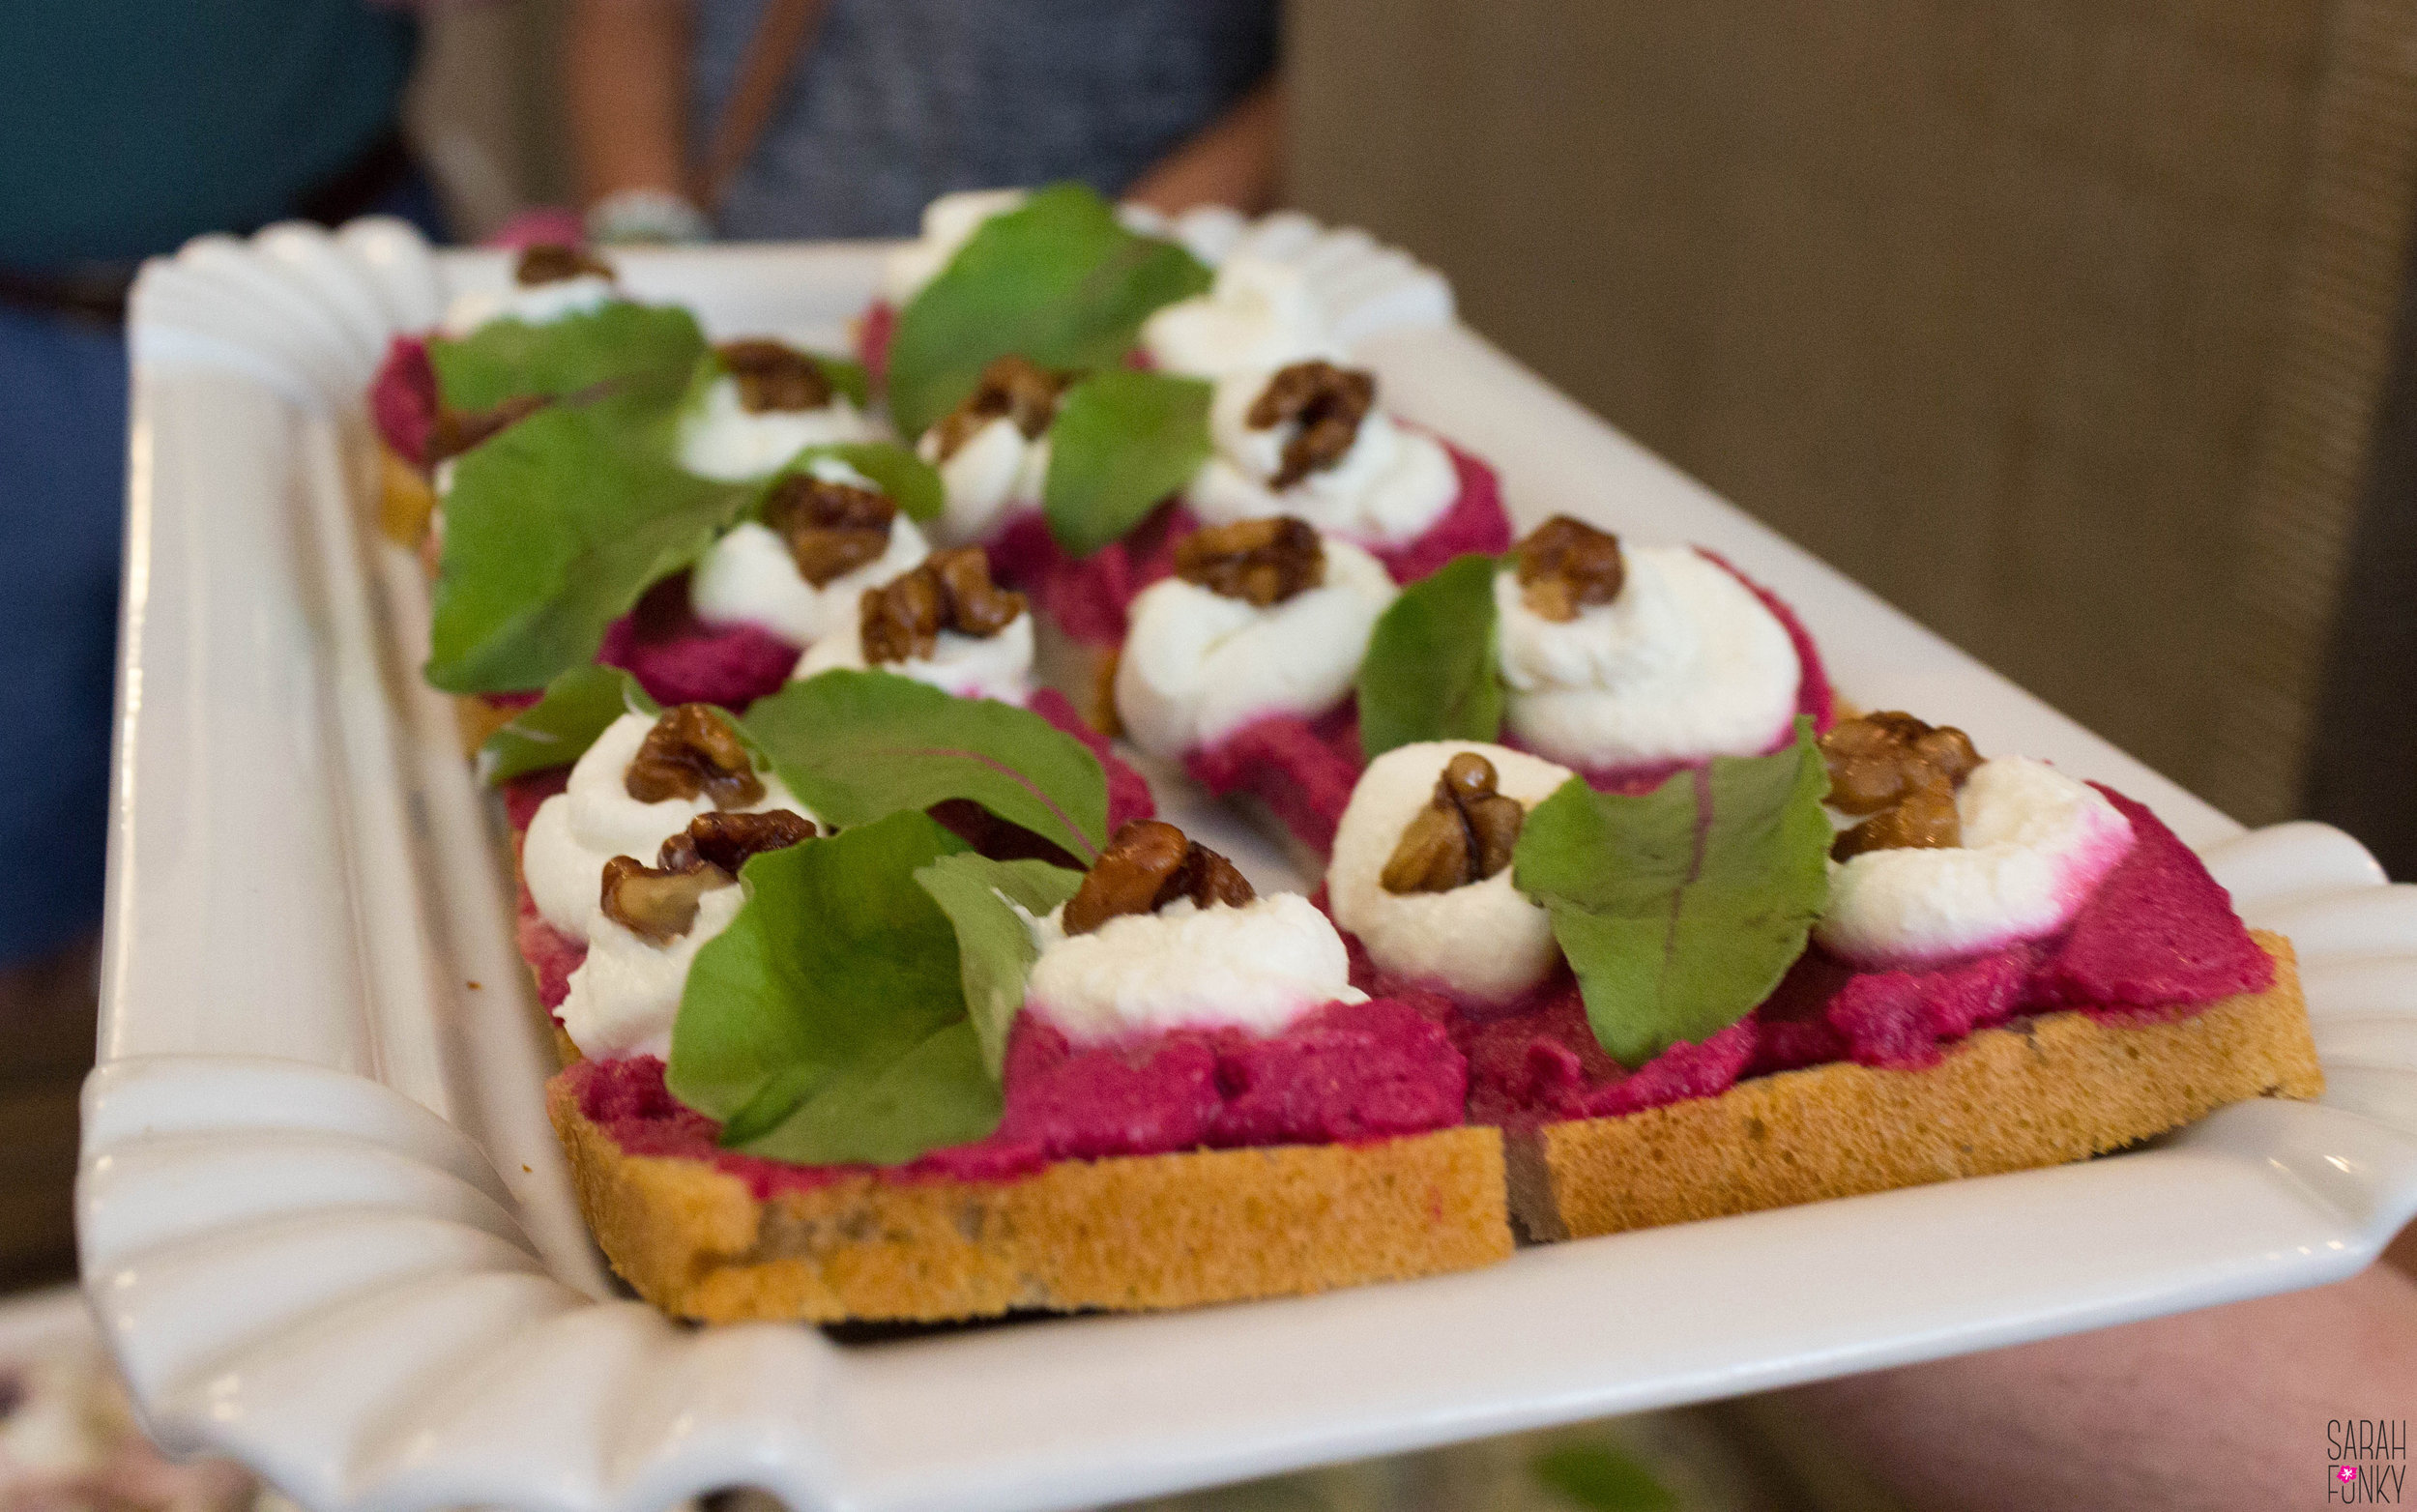 Chlebicky (open-faced sandwiches)